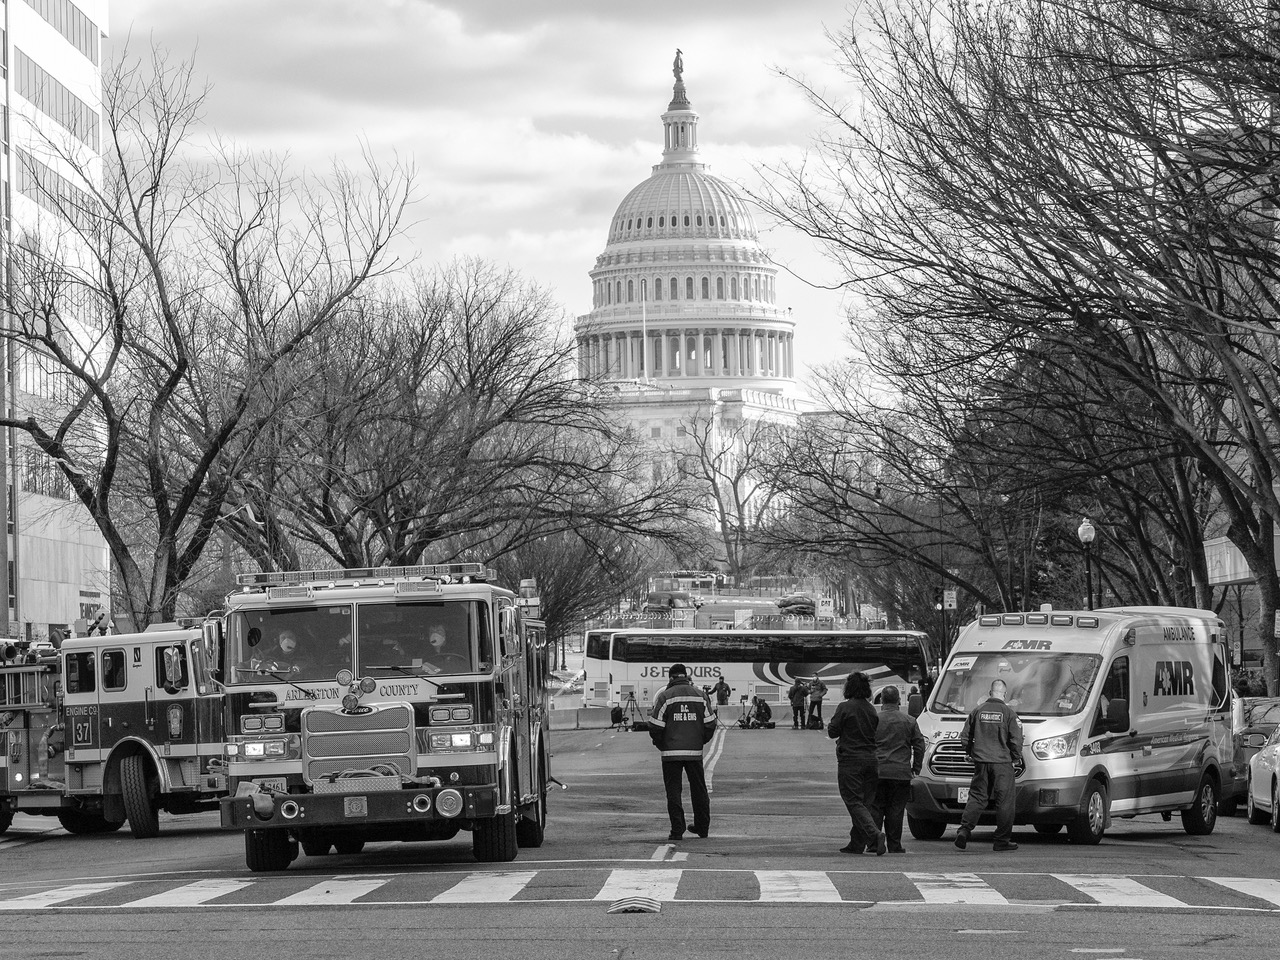 <strong>Vehicles and barriers cut off most visitors from the Capitol building during the Jan. 20 inauguration. <em>Photo By Anne Day</em></strong>